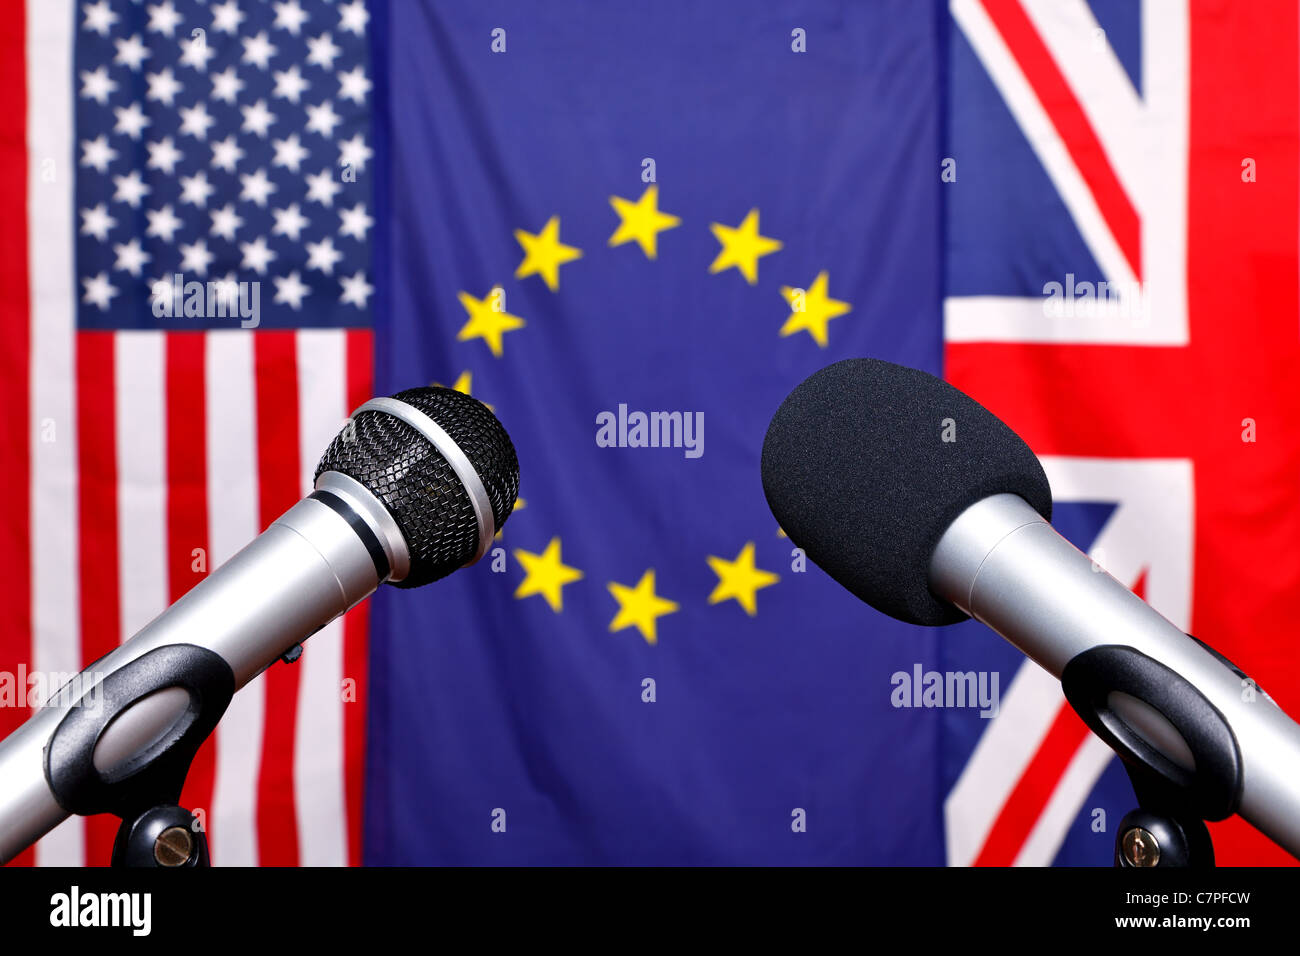 Two microphones on the stage of a press conference with the flags from America, European Union and the United Kingdom - Stock Image